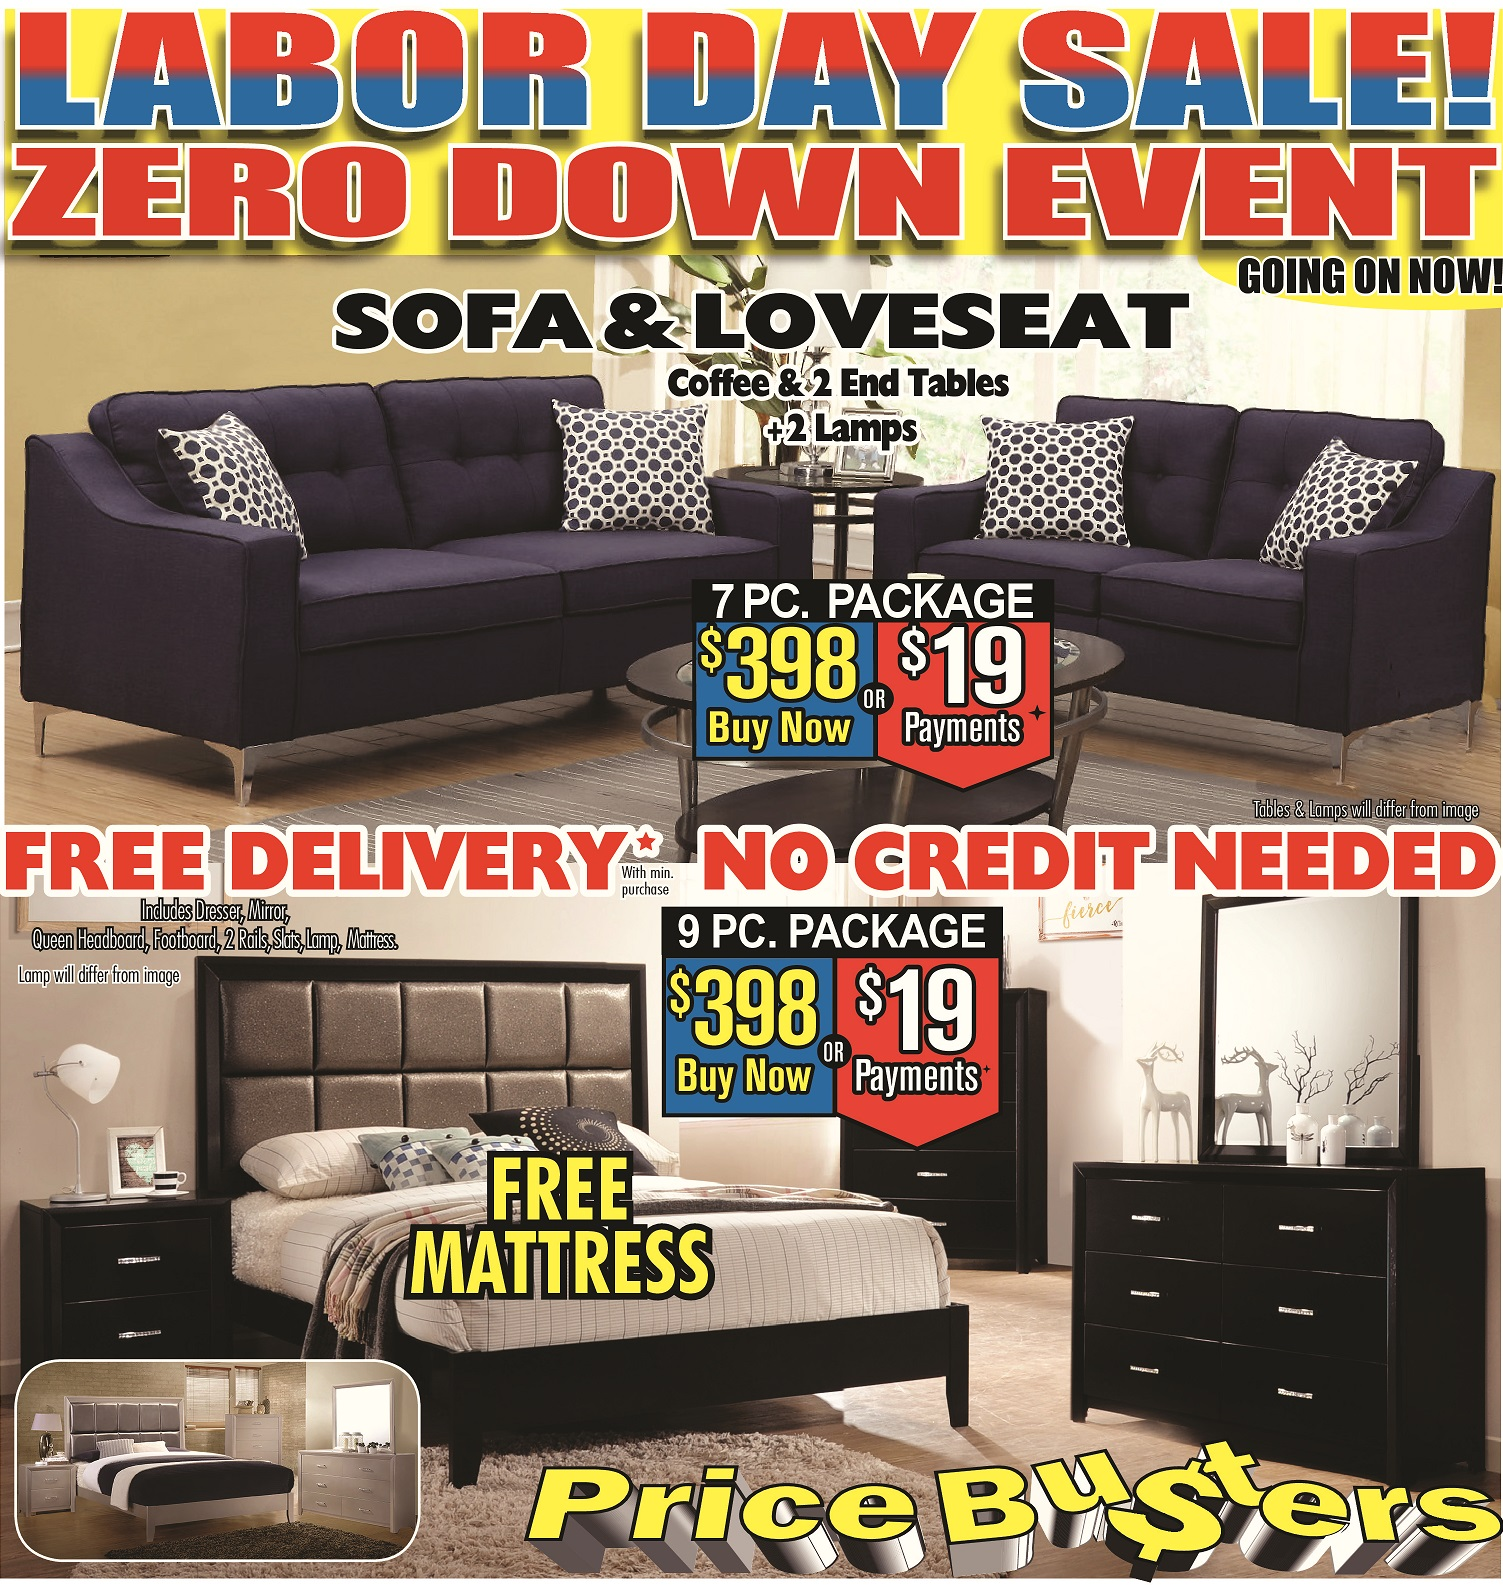 Furniture Stores Prices: Price Busters Discount Furniture, Essex Maryland (MD